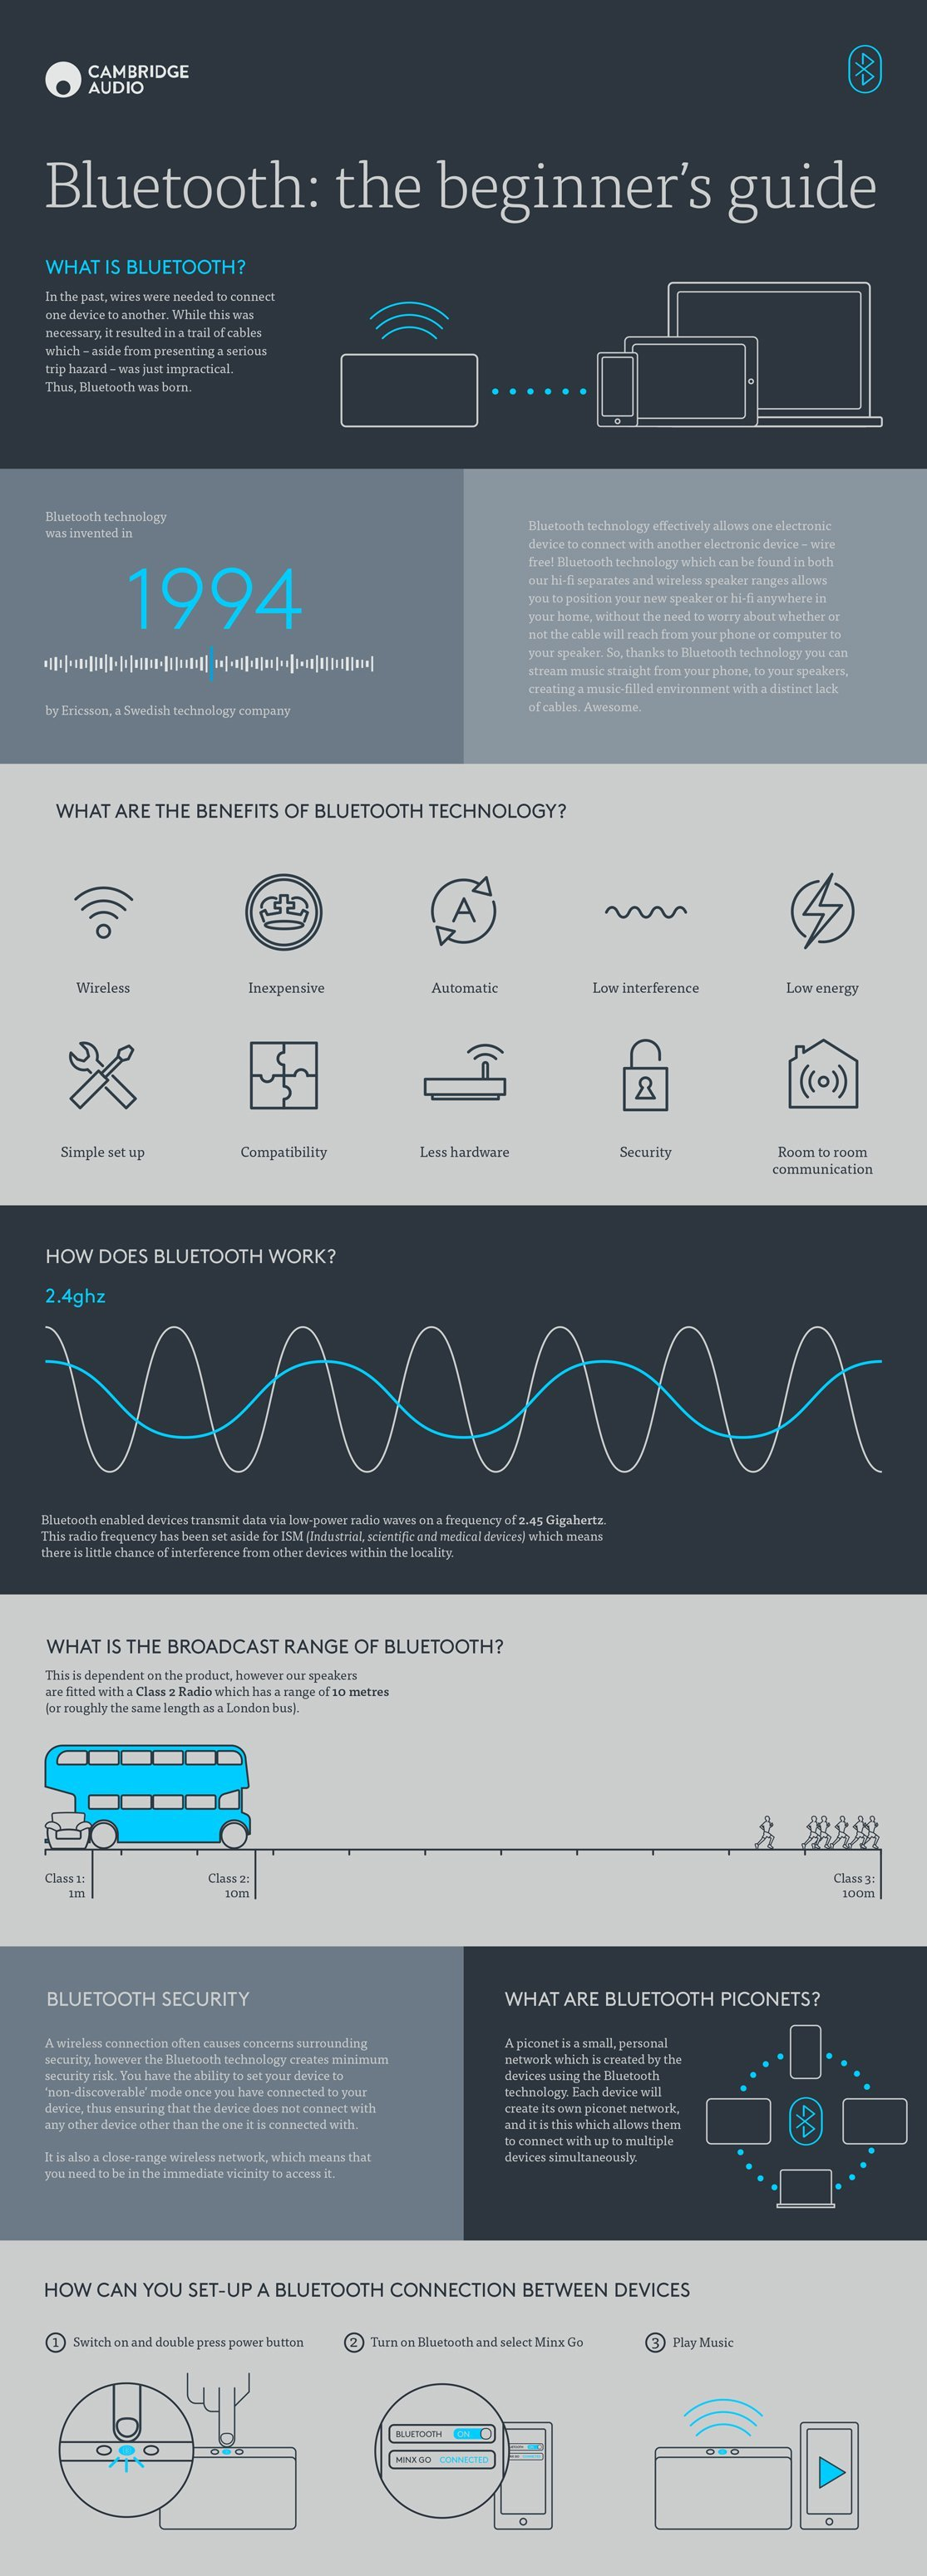 Bluetooth: The Beginner's Guide Infographic